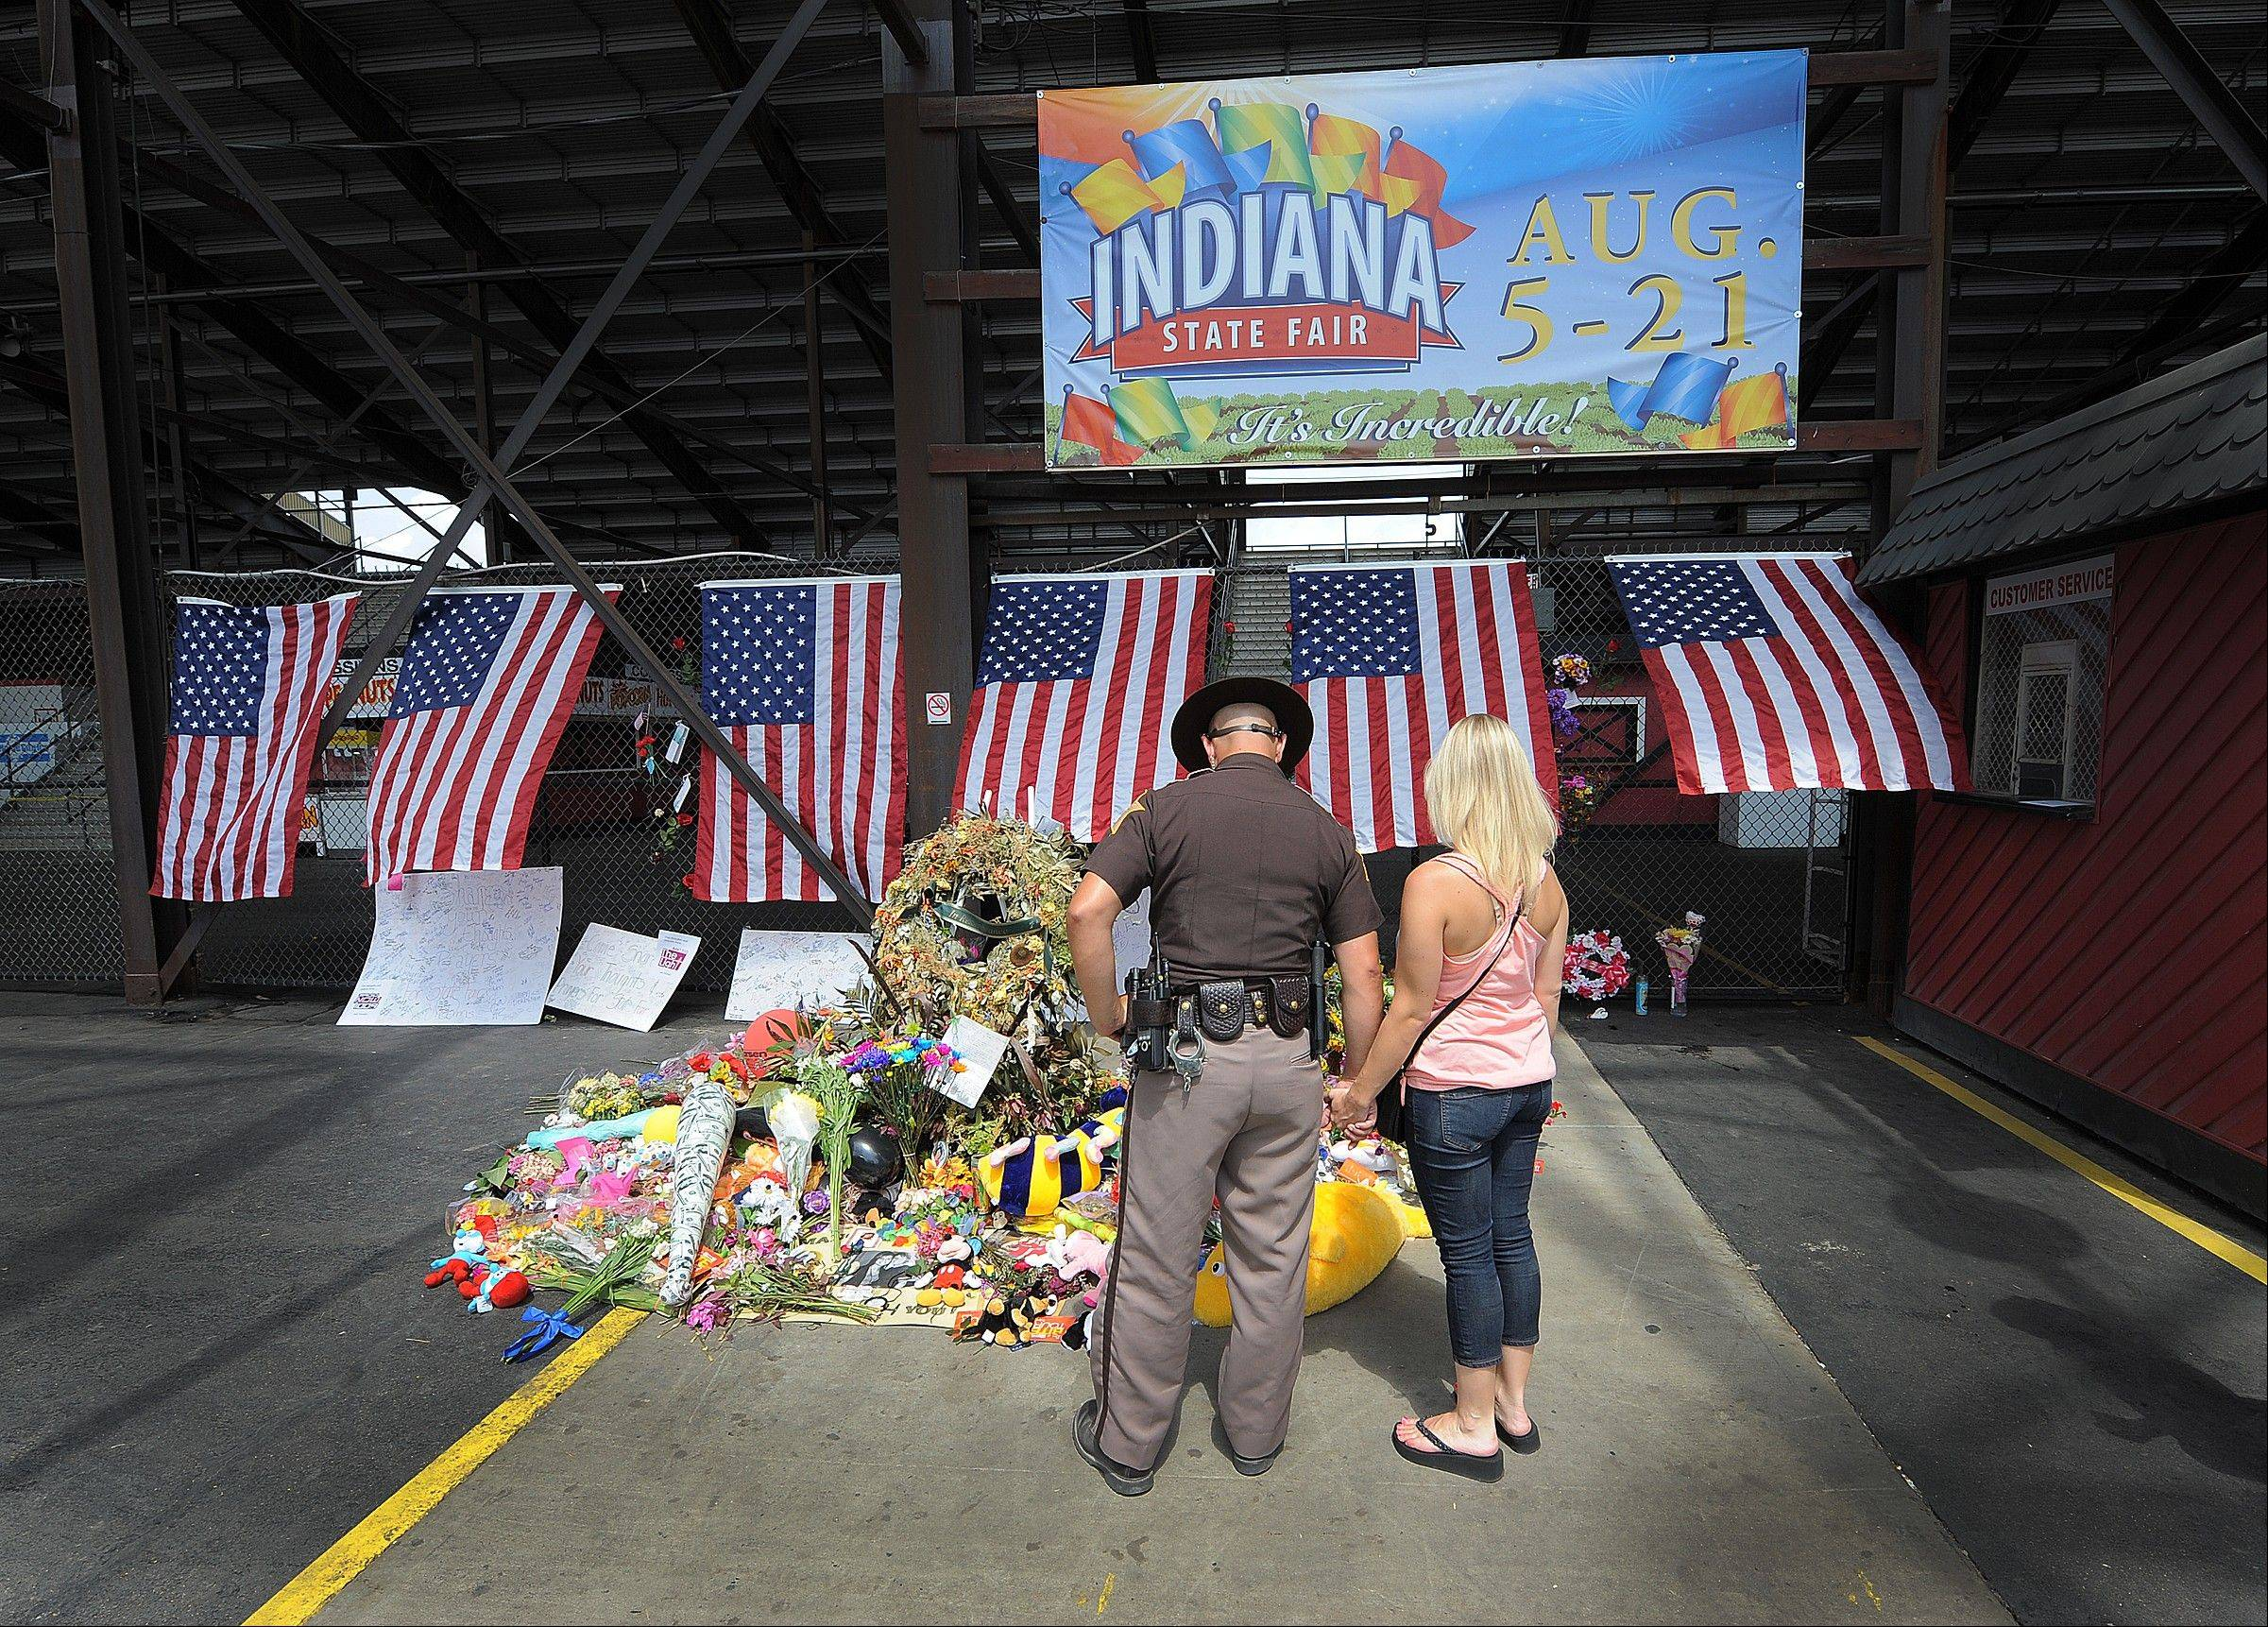 Fairgoers stop and pay their respects at the make-shift memorial for the six victims of last Saturday night stage collapse just before Sugarland was to perform. Police say a 24-year-old woman from Ohio has become the seventh person to die from injuries when a stage collapsed at the Indiana State Fair.